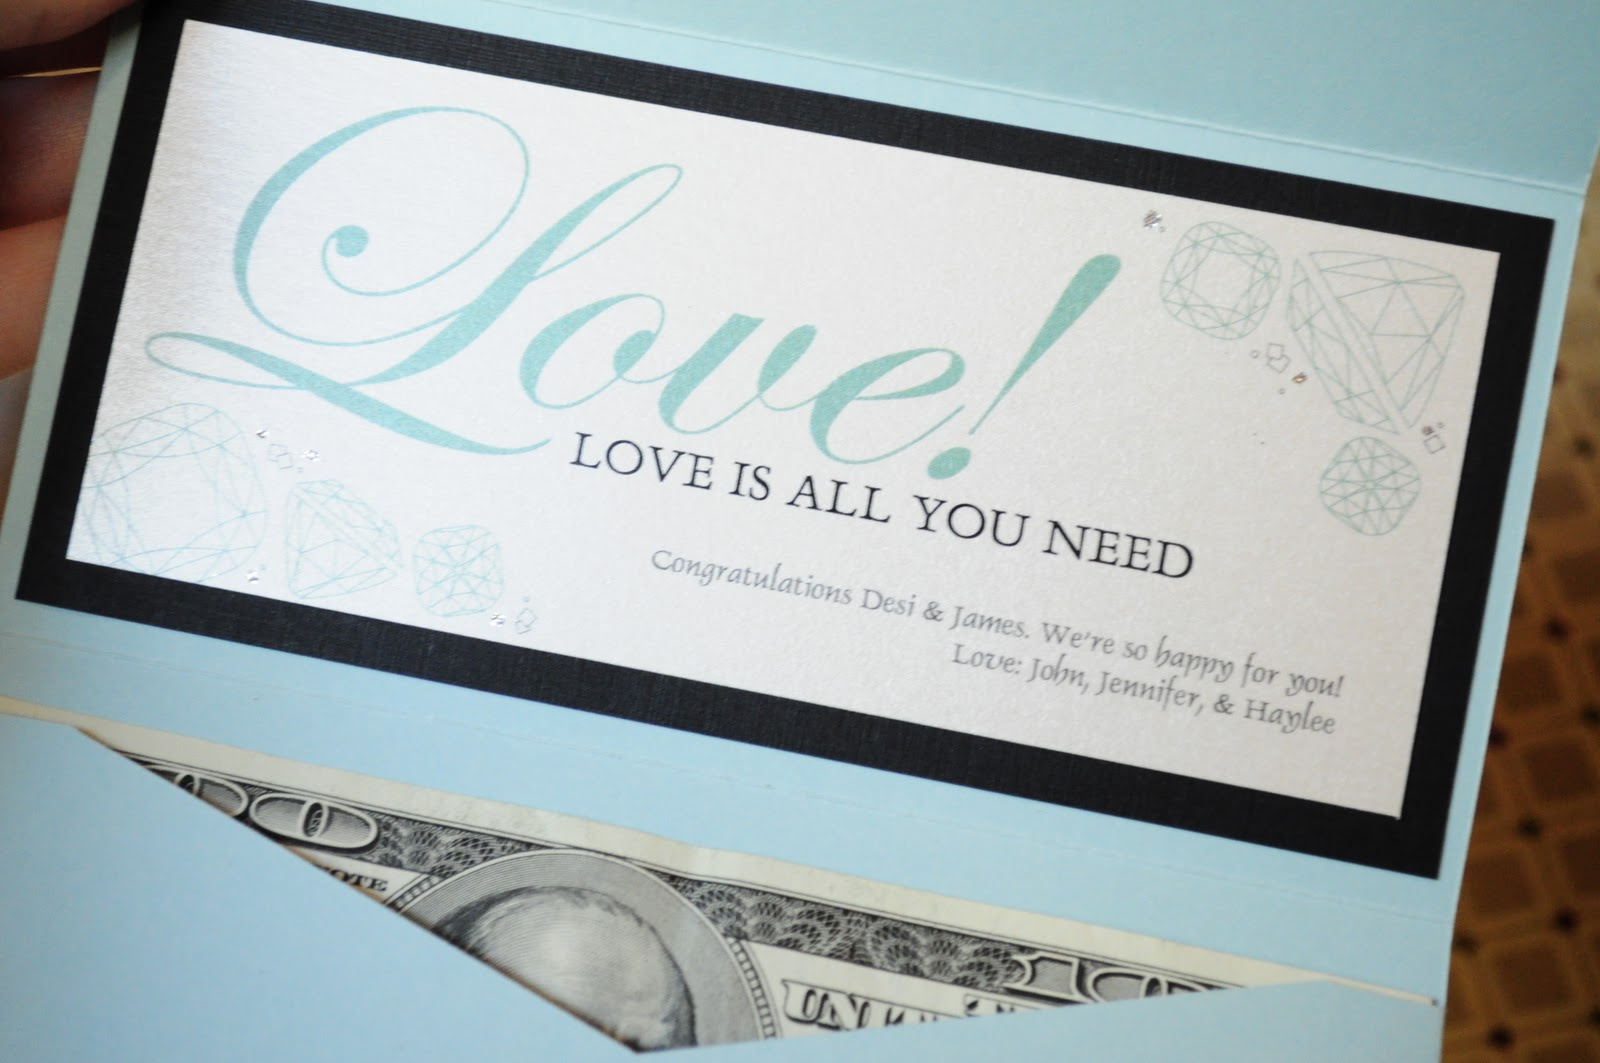 Money For Wedding Gift Cash Or Check : greeting cards. Designed for cash or check gifts. Perfect for wedding ...